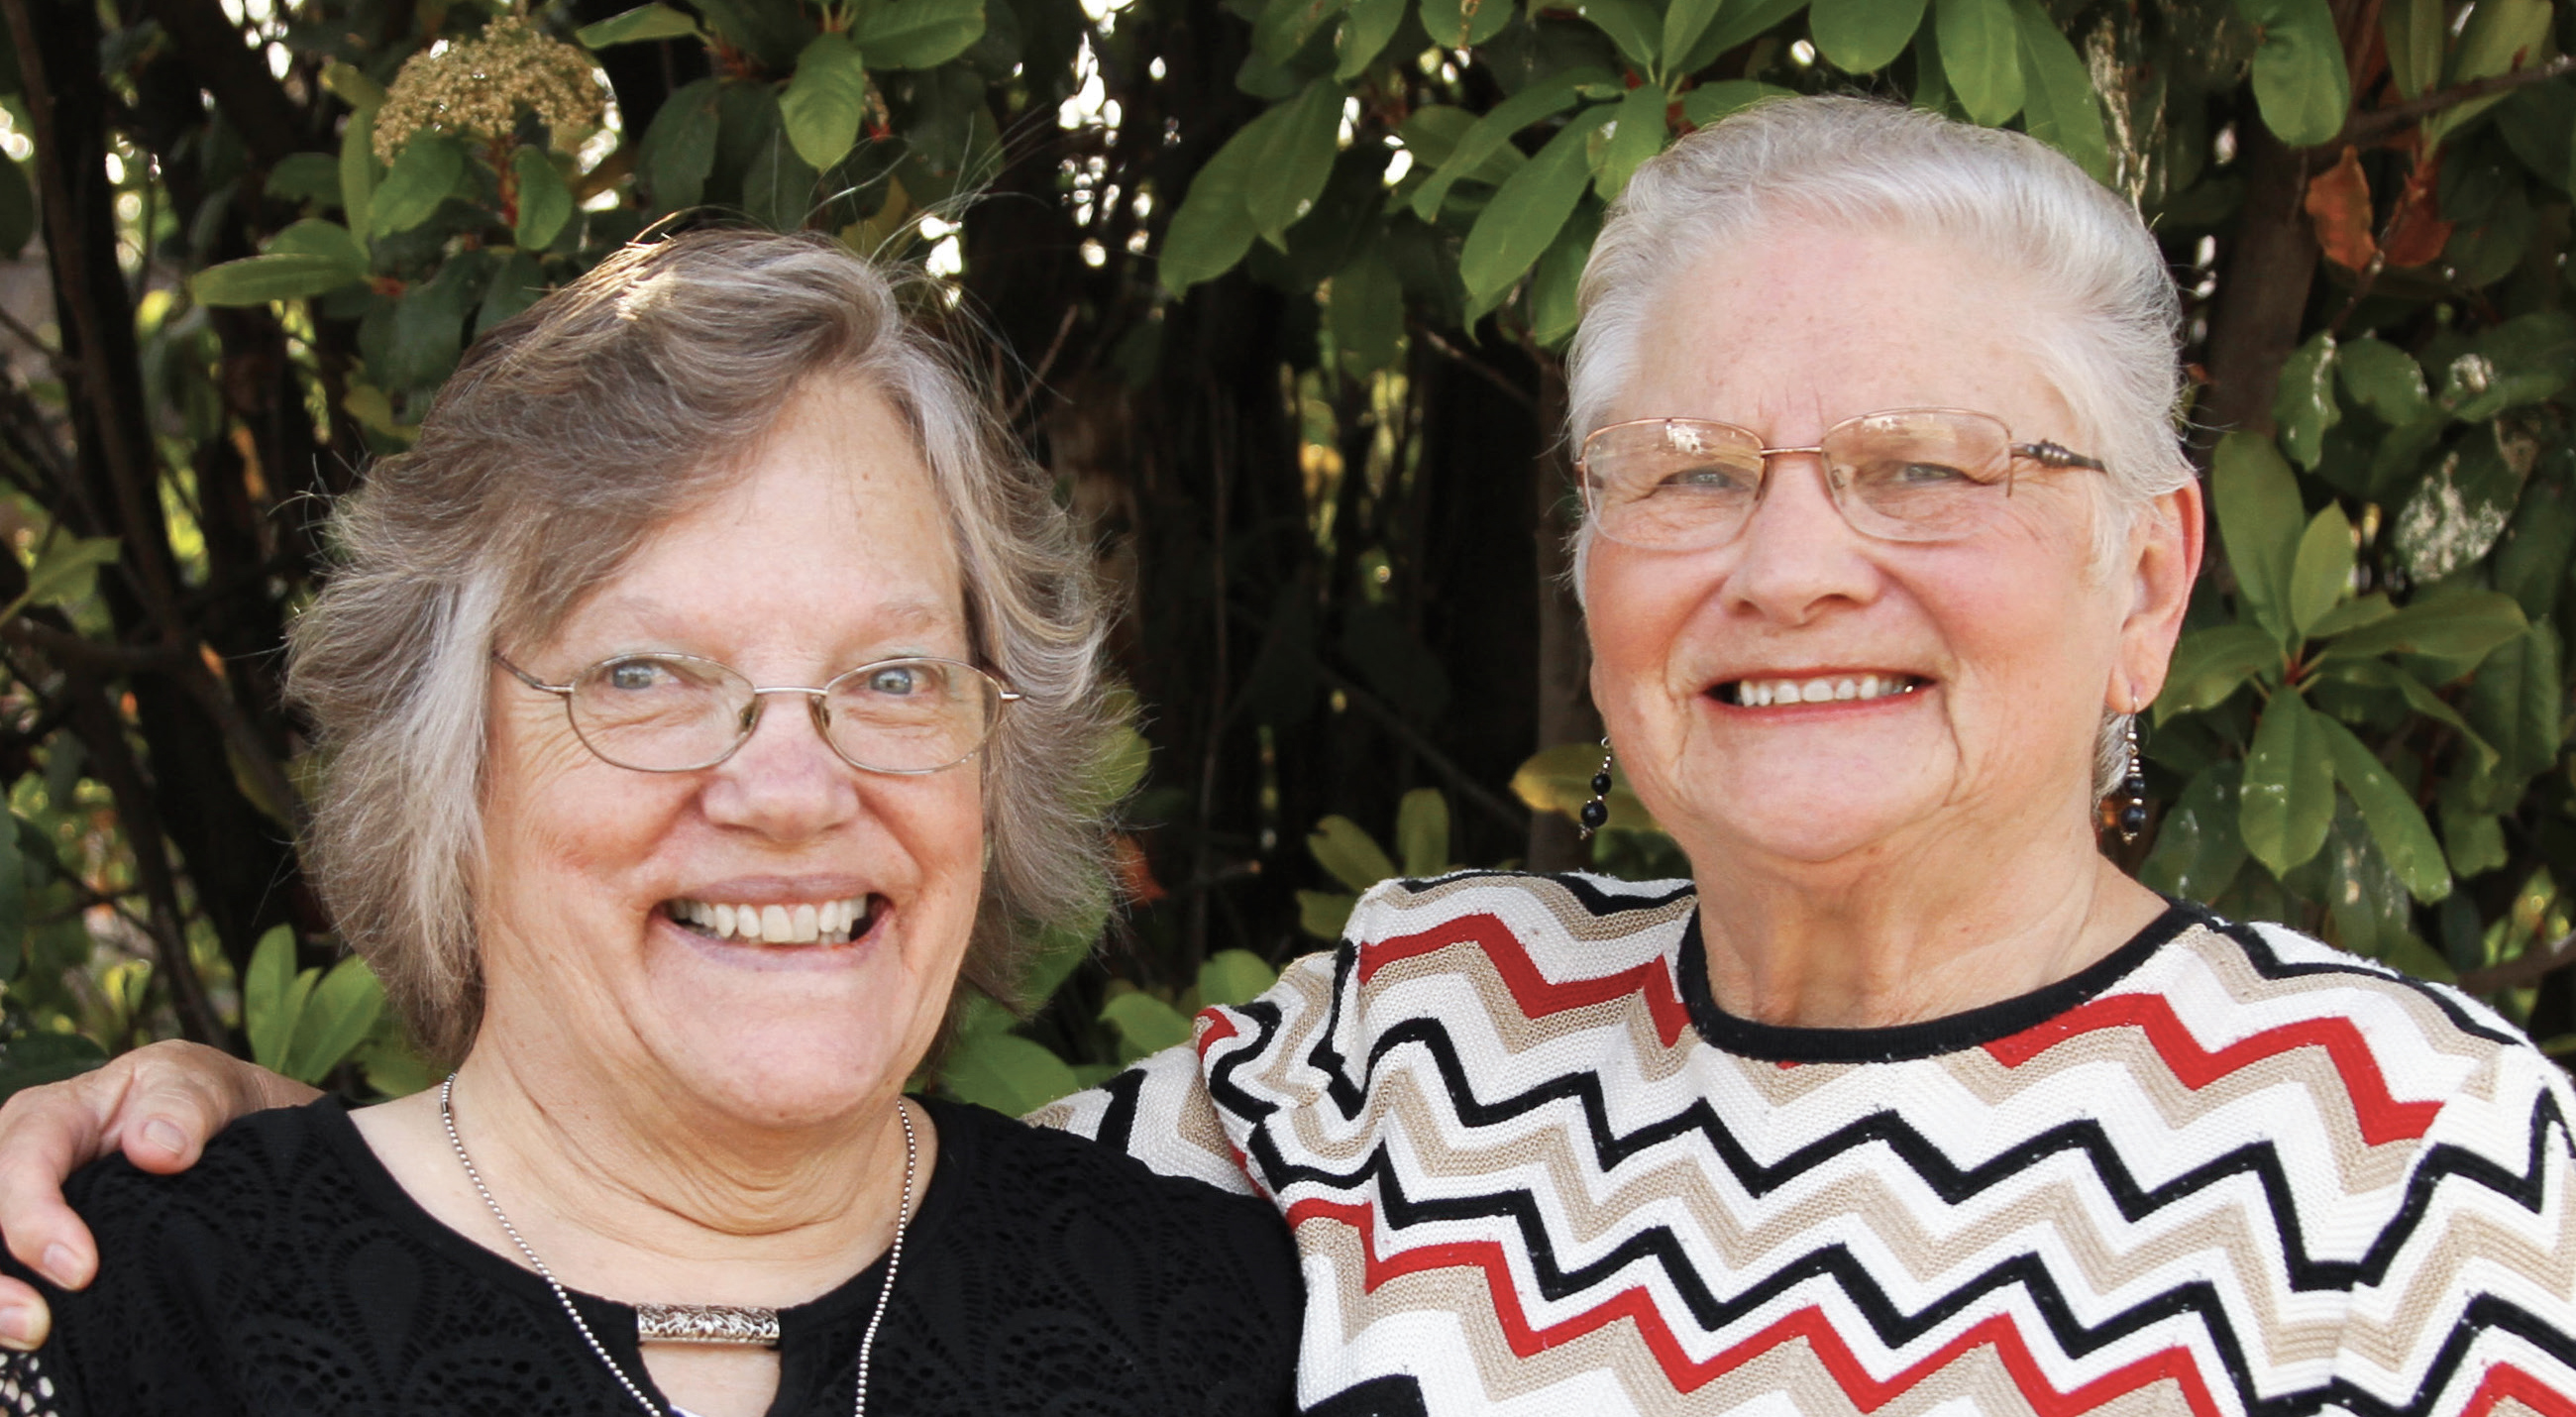 From left: Marilyn K. Stade and Sally Stade, RN